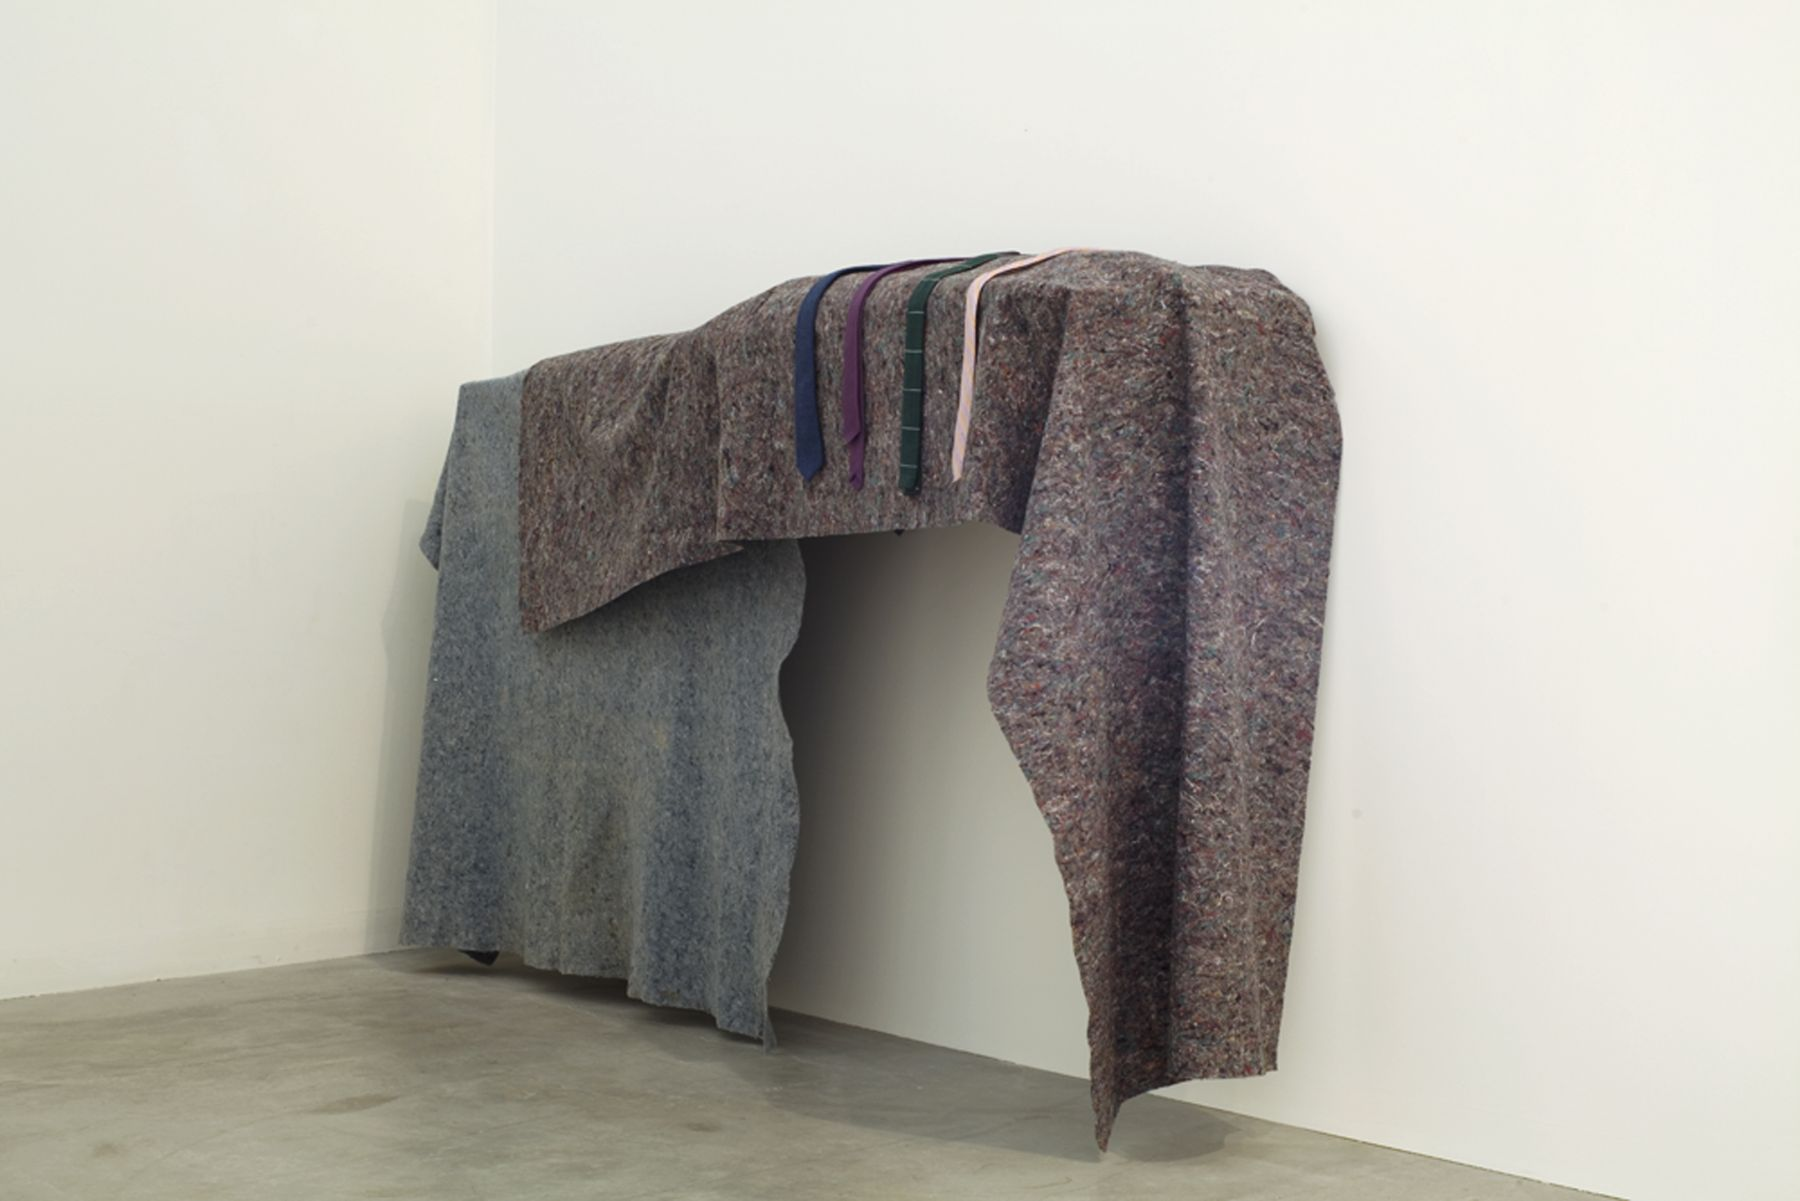 Gedi Sibony Made For Ribbons, 2009 Blankets, neckties 57 x 106 x 24 inches 12.7 x 269.24 x 60.96 cm